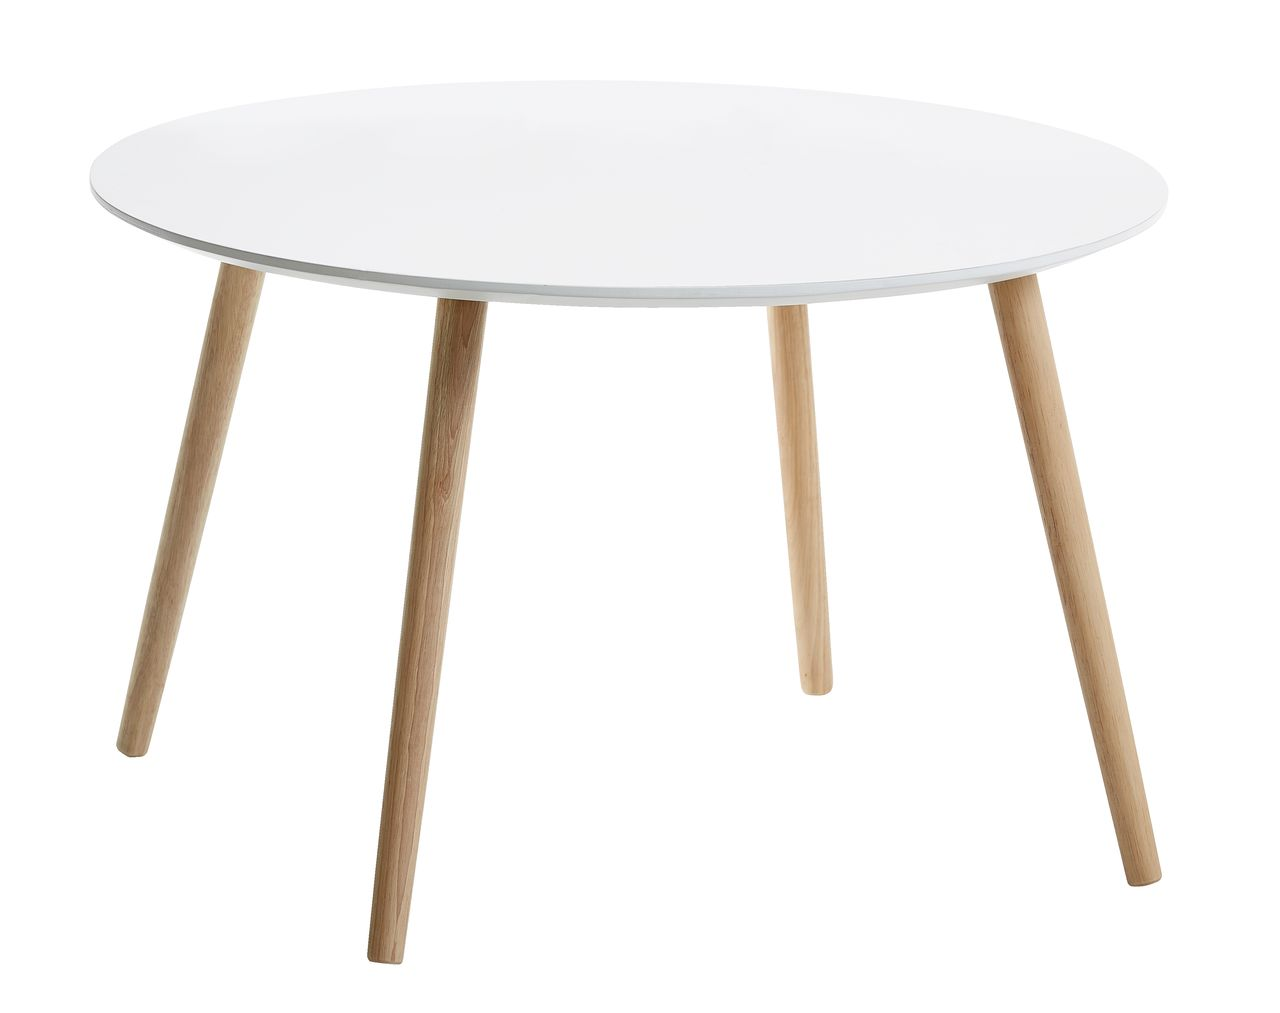 Coffee table fannerup d75 white jysk for Sofa table jysk